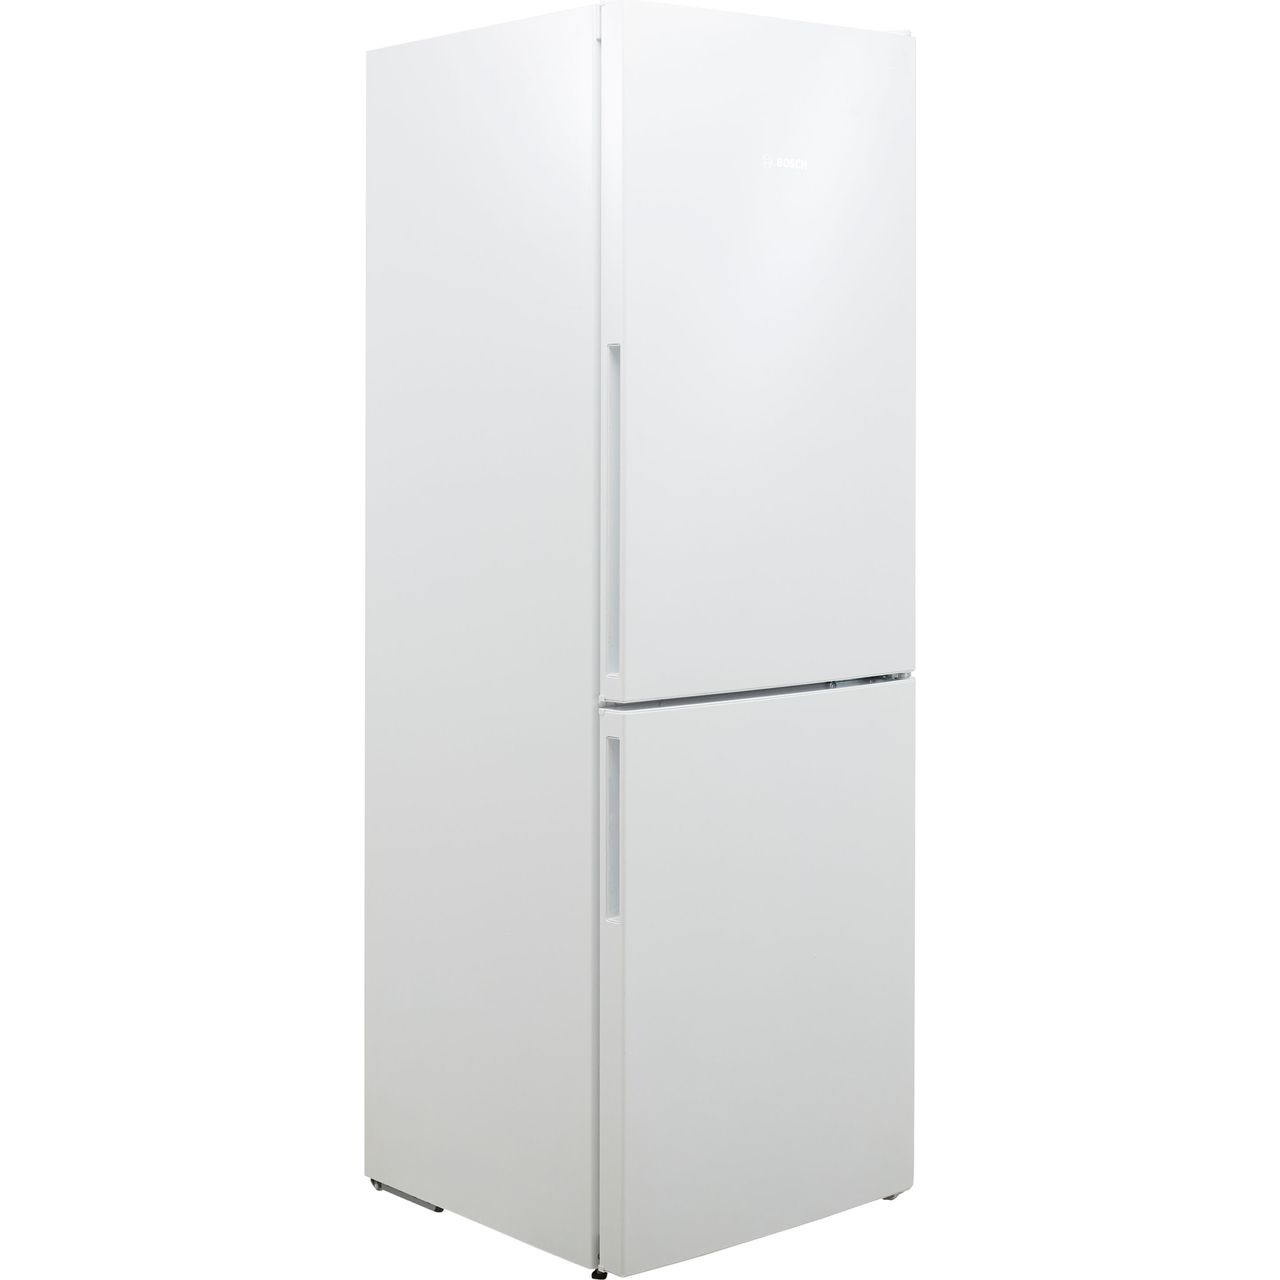 Bosch Serie 4 KGV33UW30G Free Standing Fridge Freezer in White